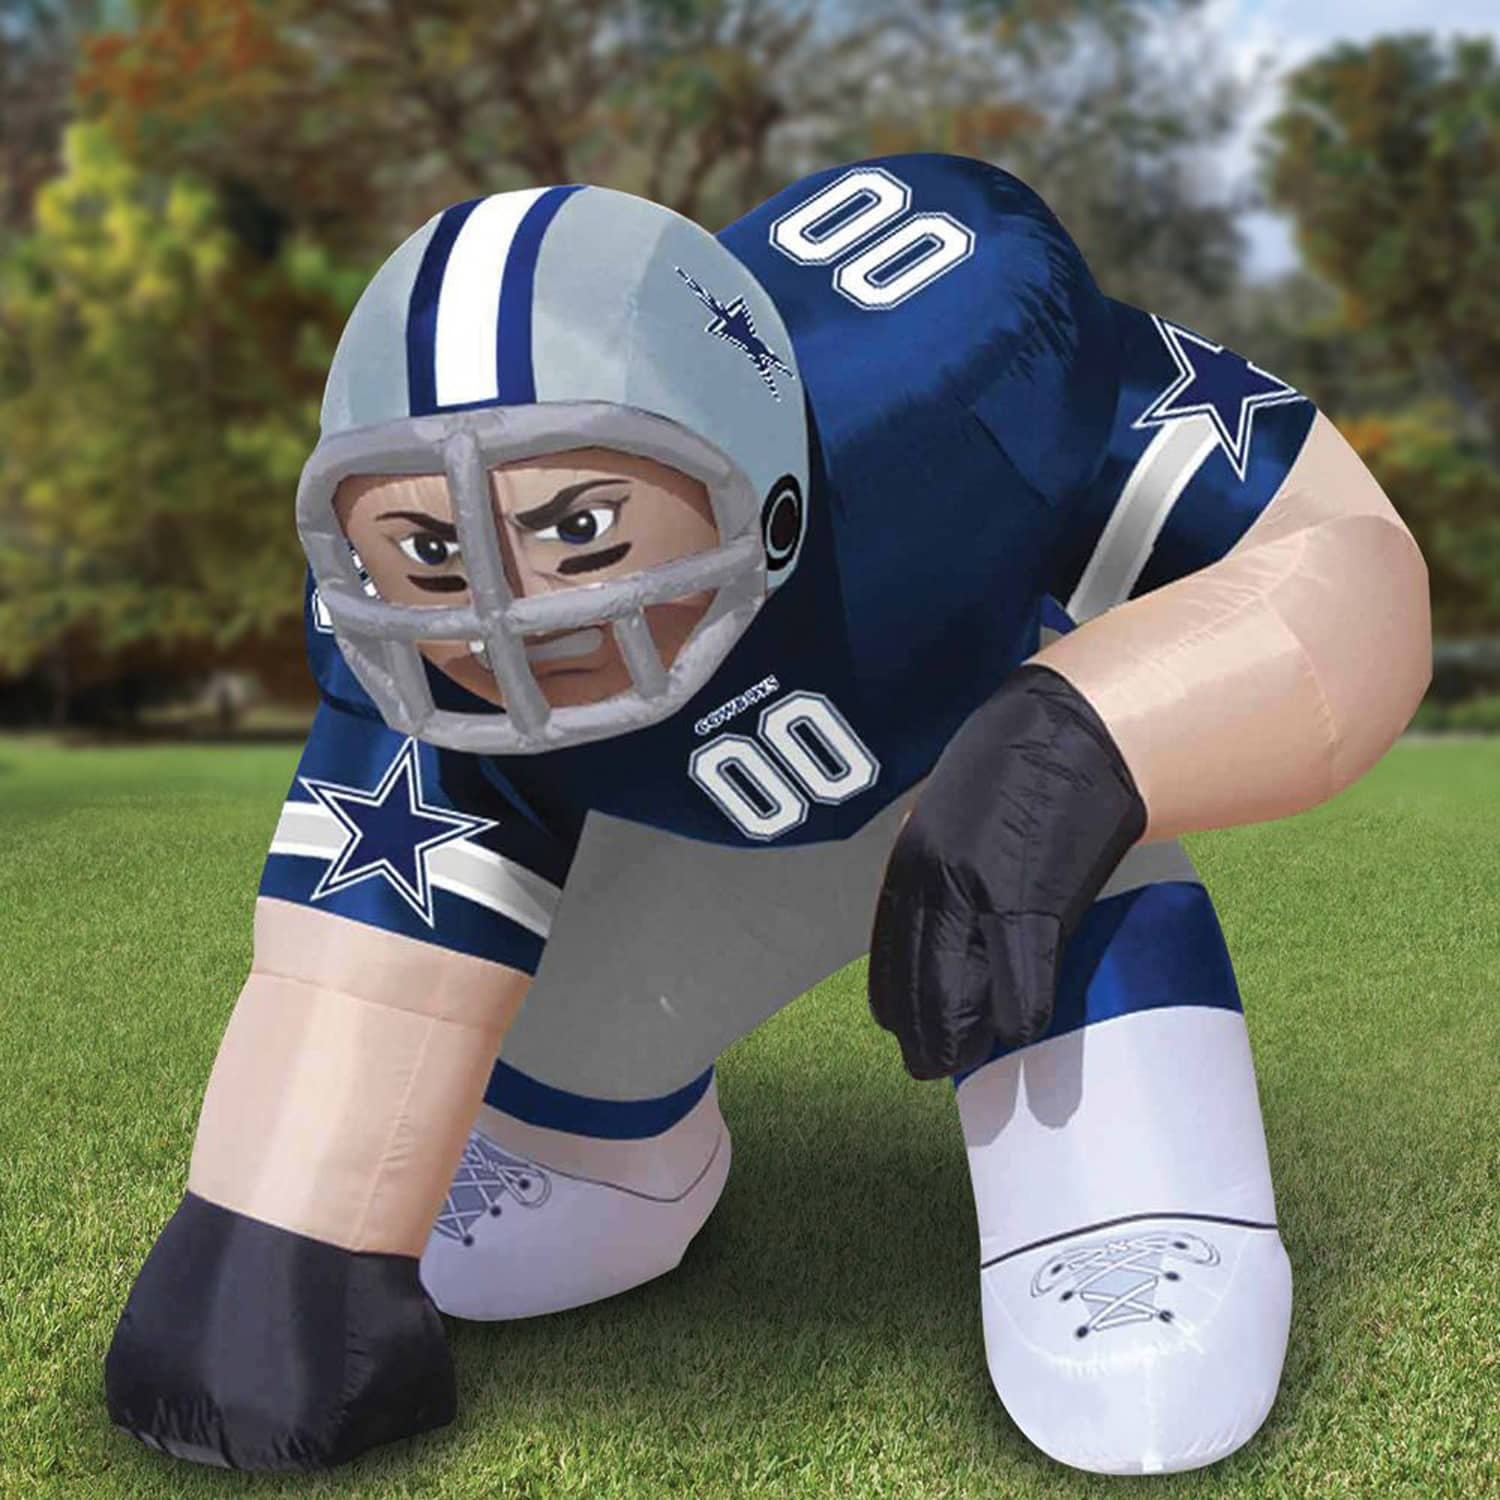 Nfl: Giant Inflatable NFL Players